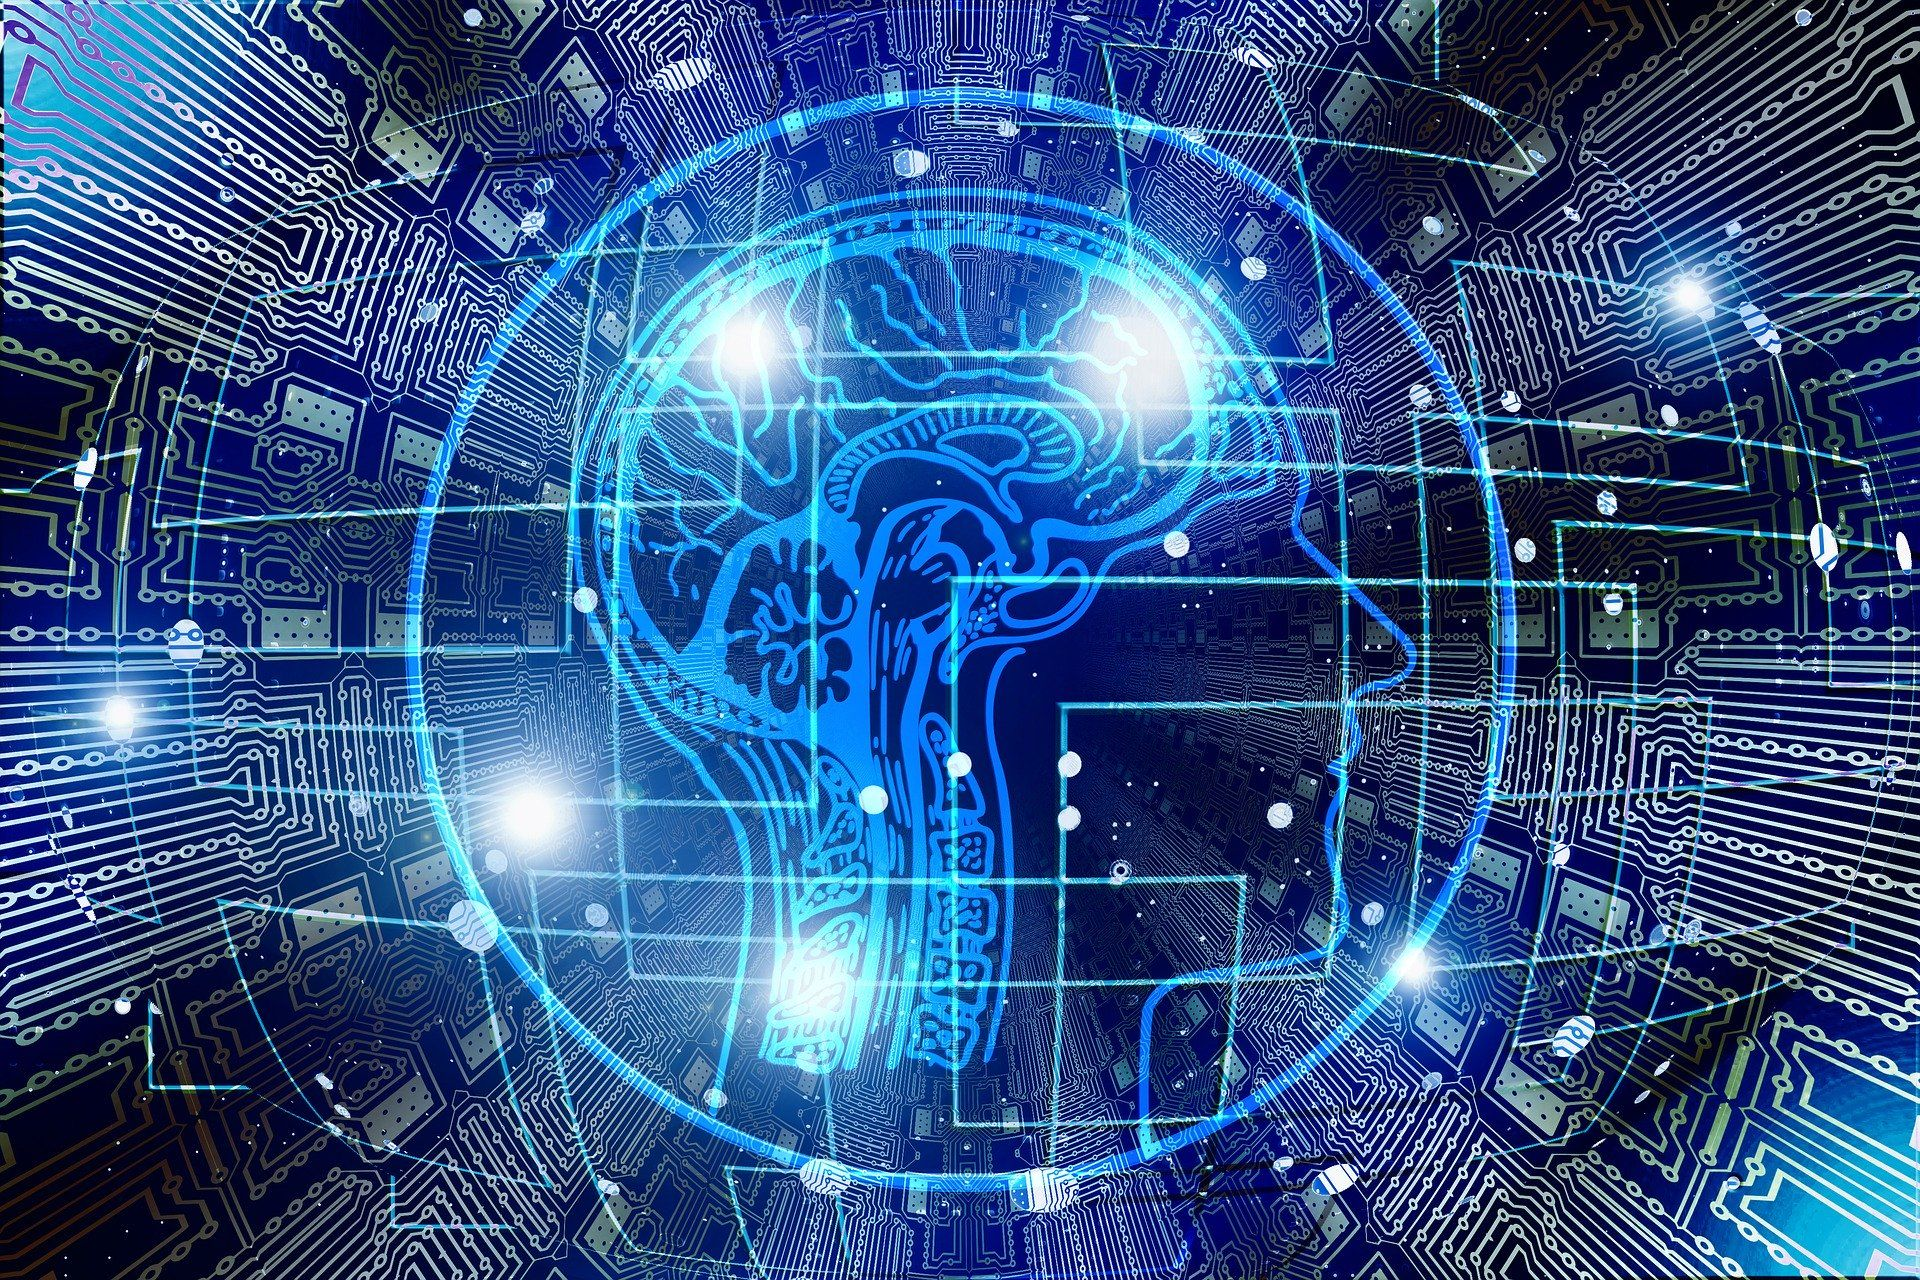 Blue brain image in circuit boards